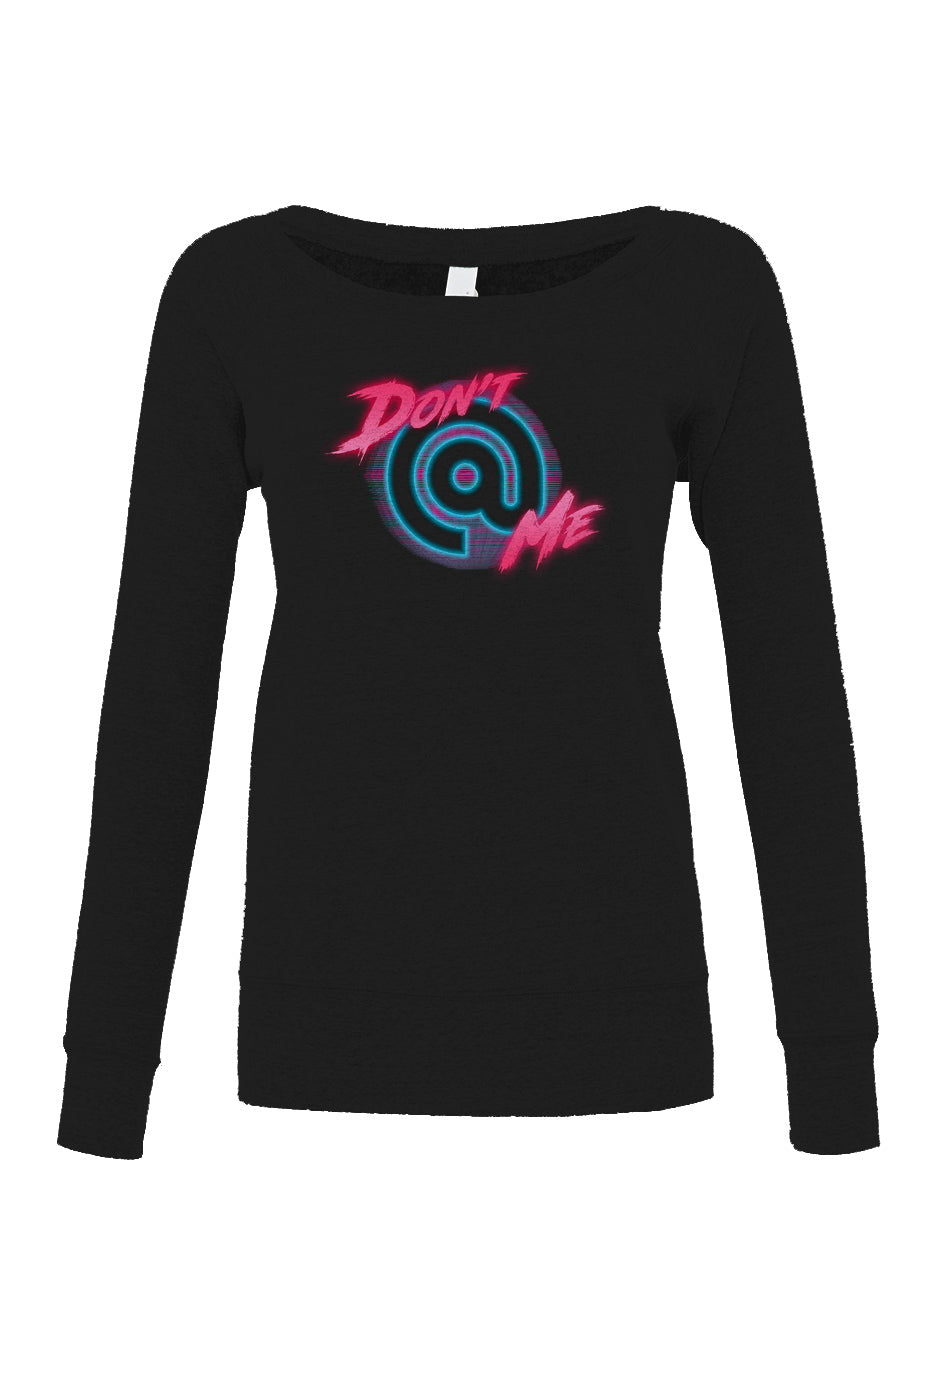 Women's Don't At Me Scoop Neck Fleece